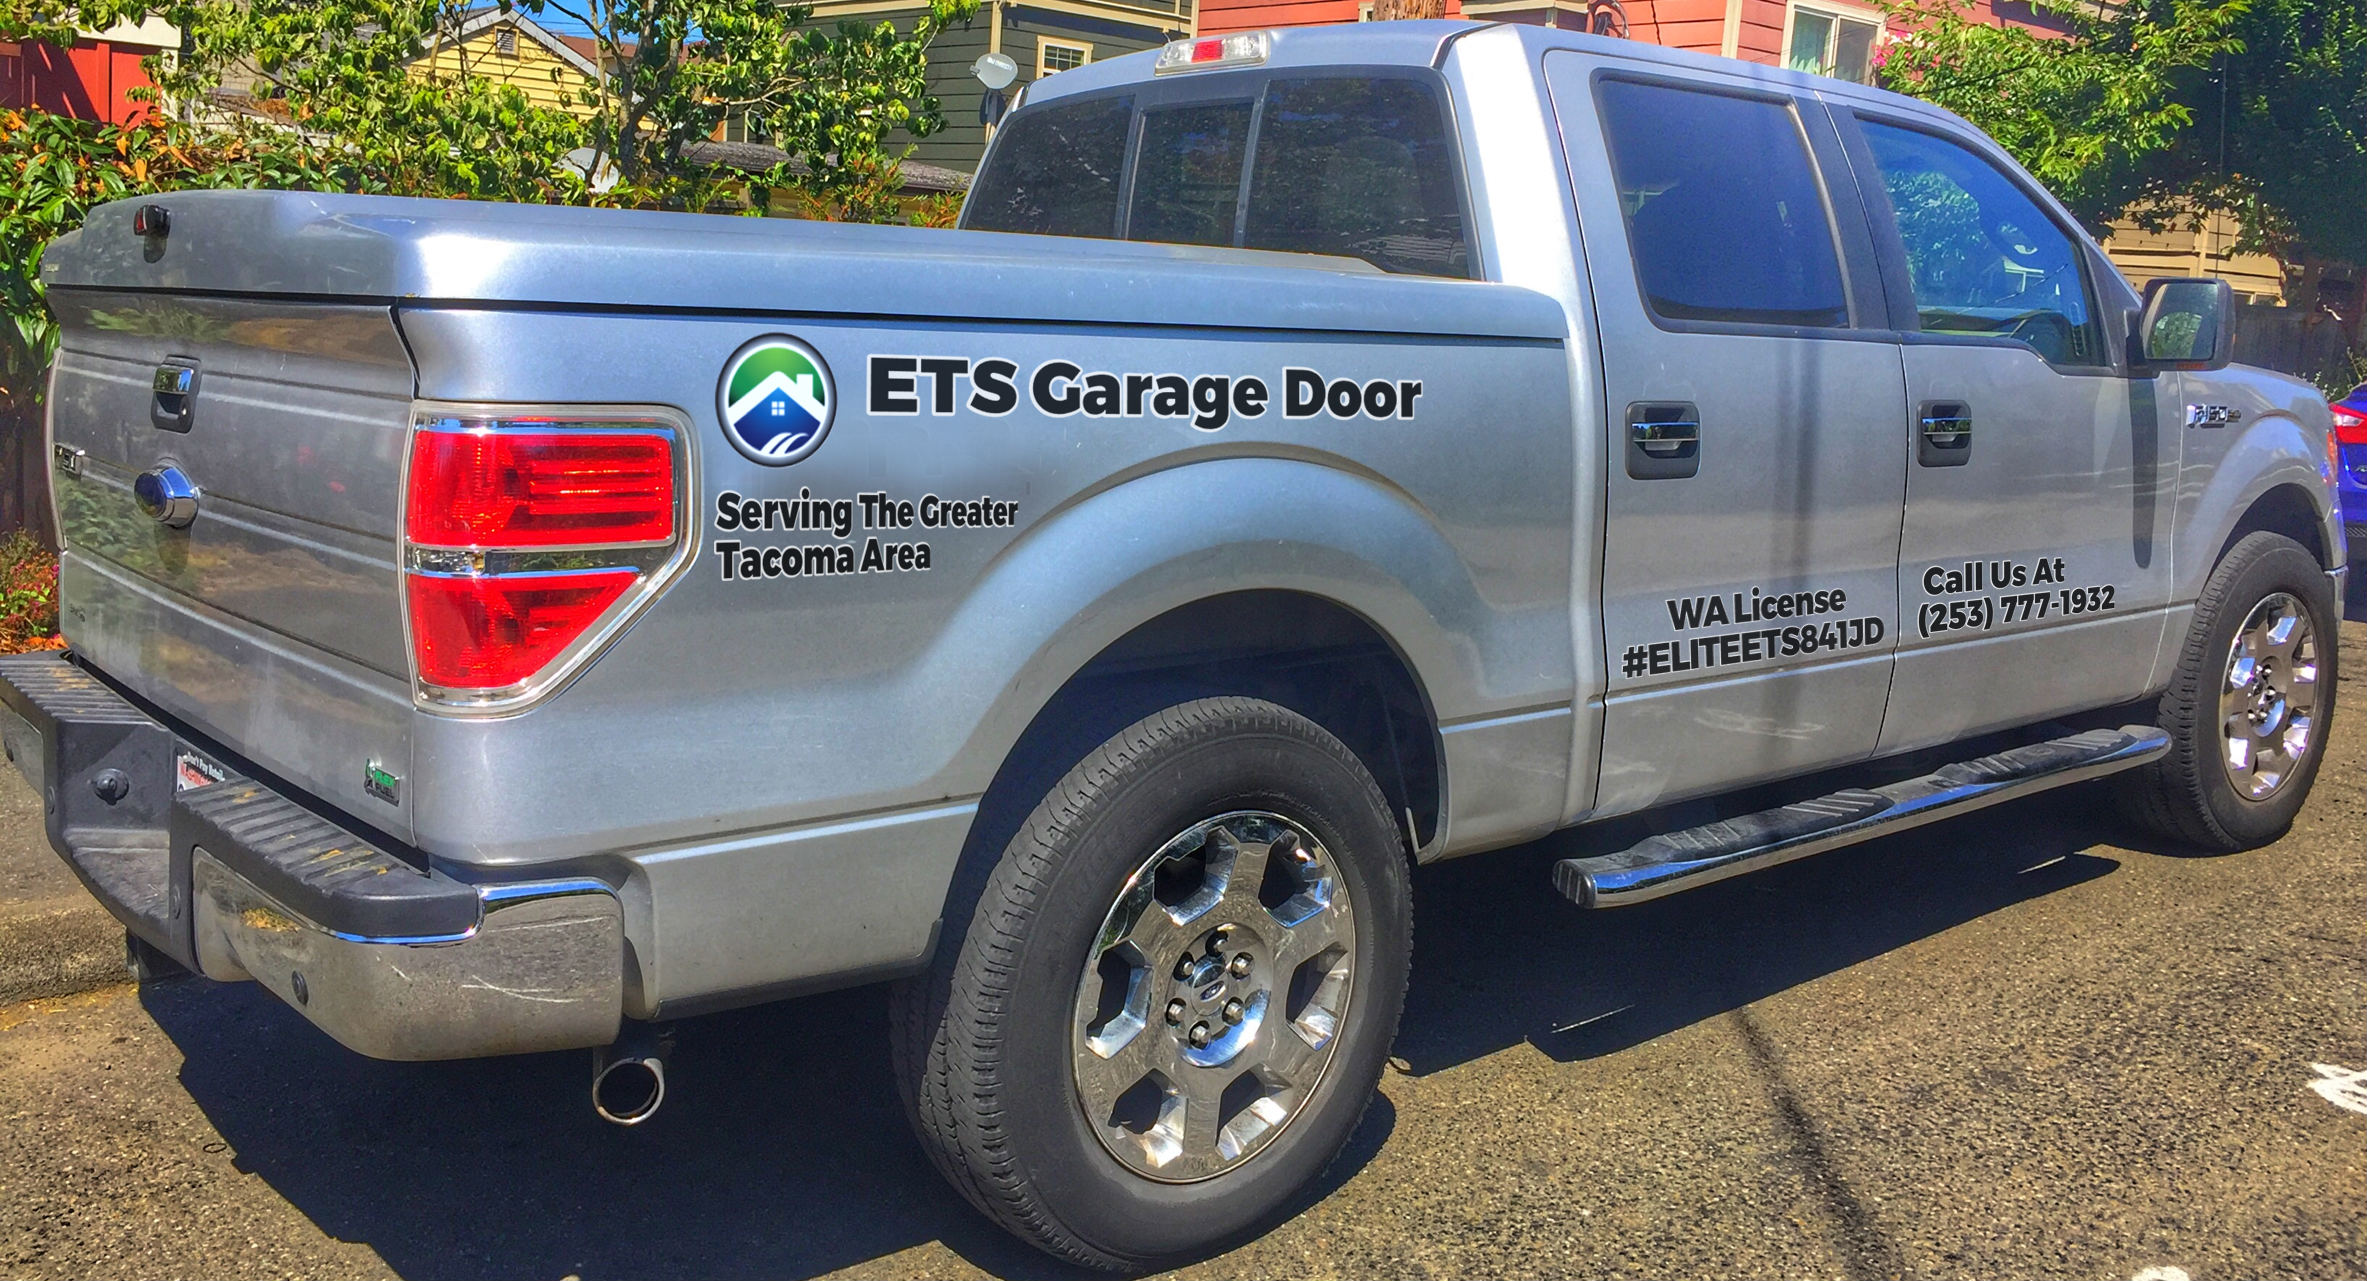 ETS Garage Door U0026 Automated Gate Repair In Seattle Washington